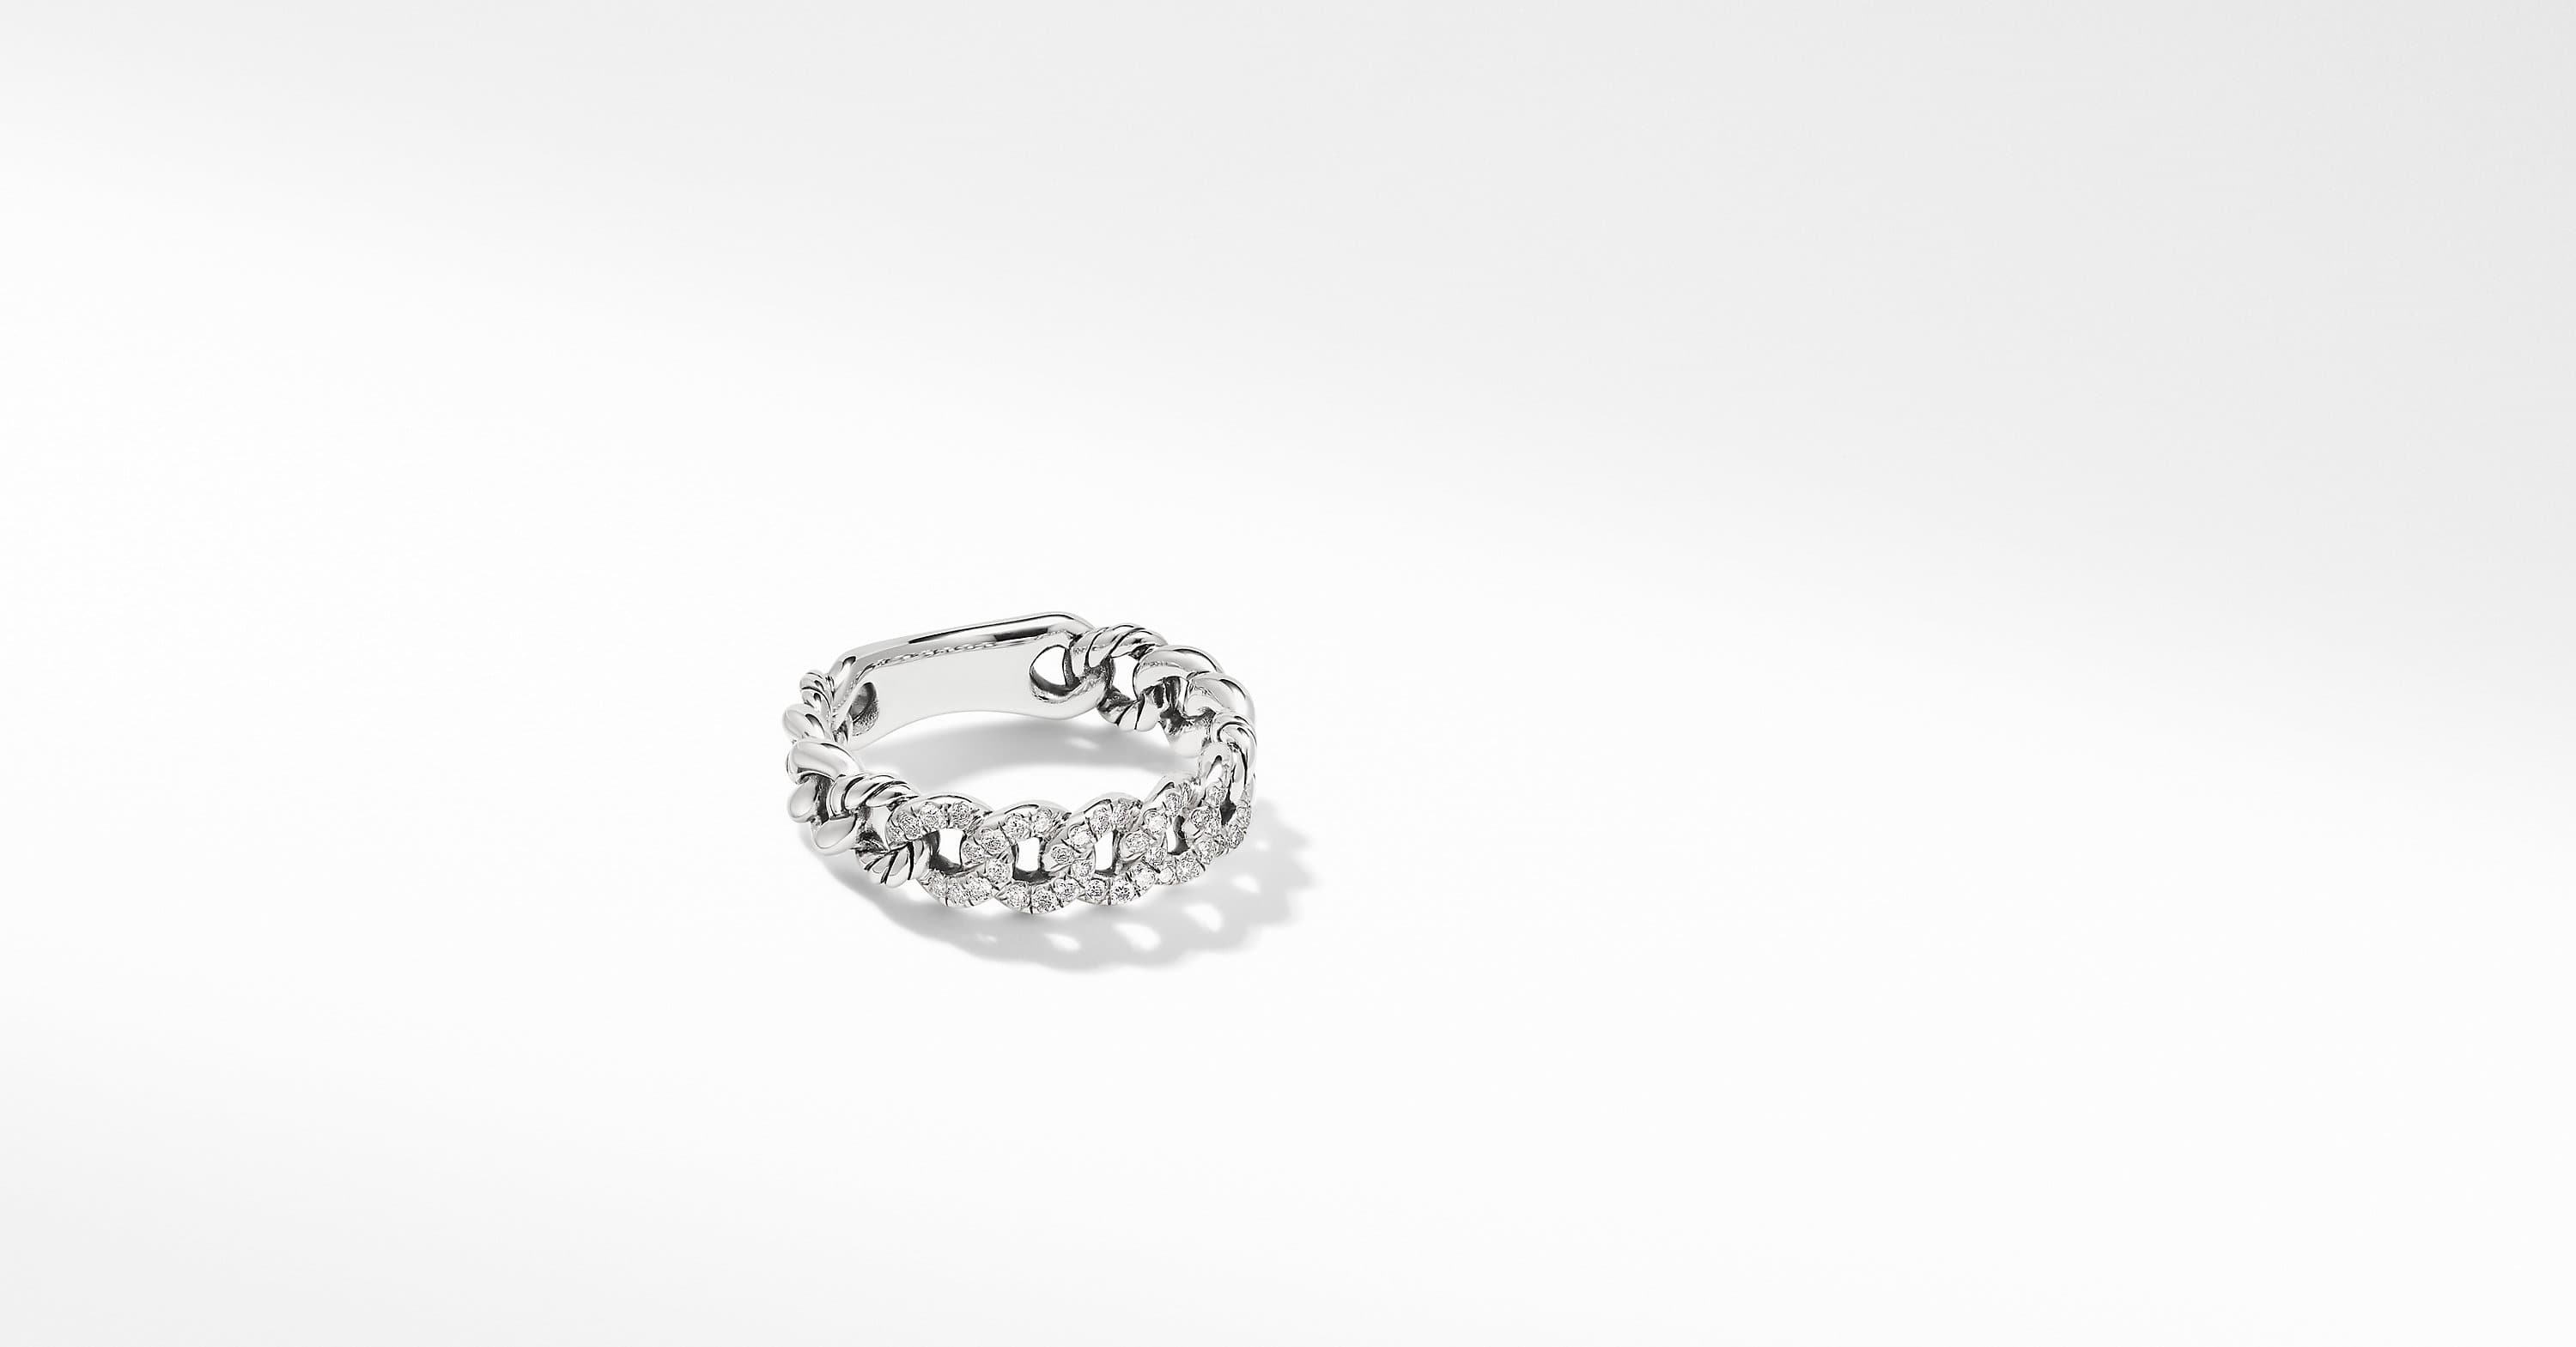 Belmont Curb Link Narrow Ring with Pavé